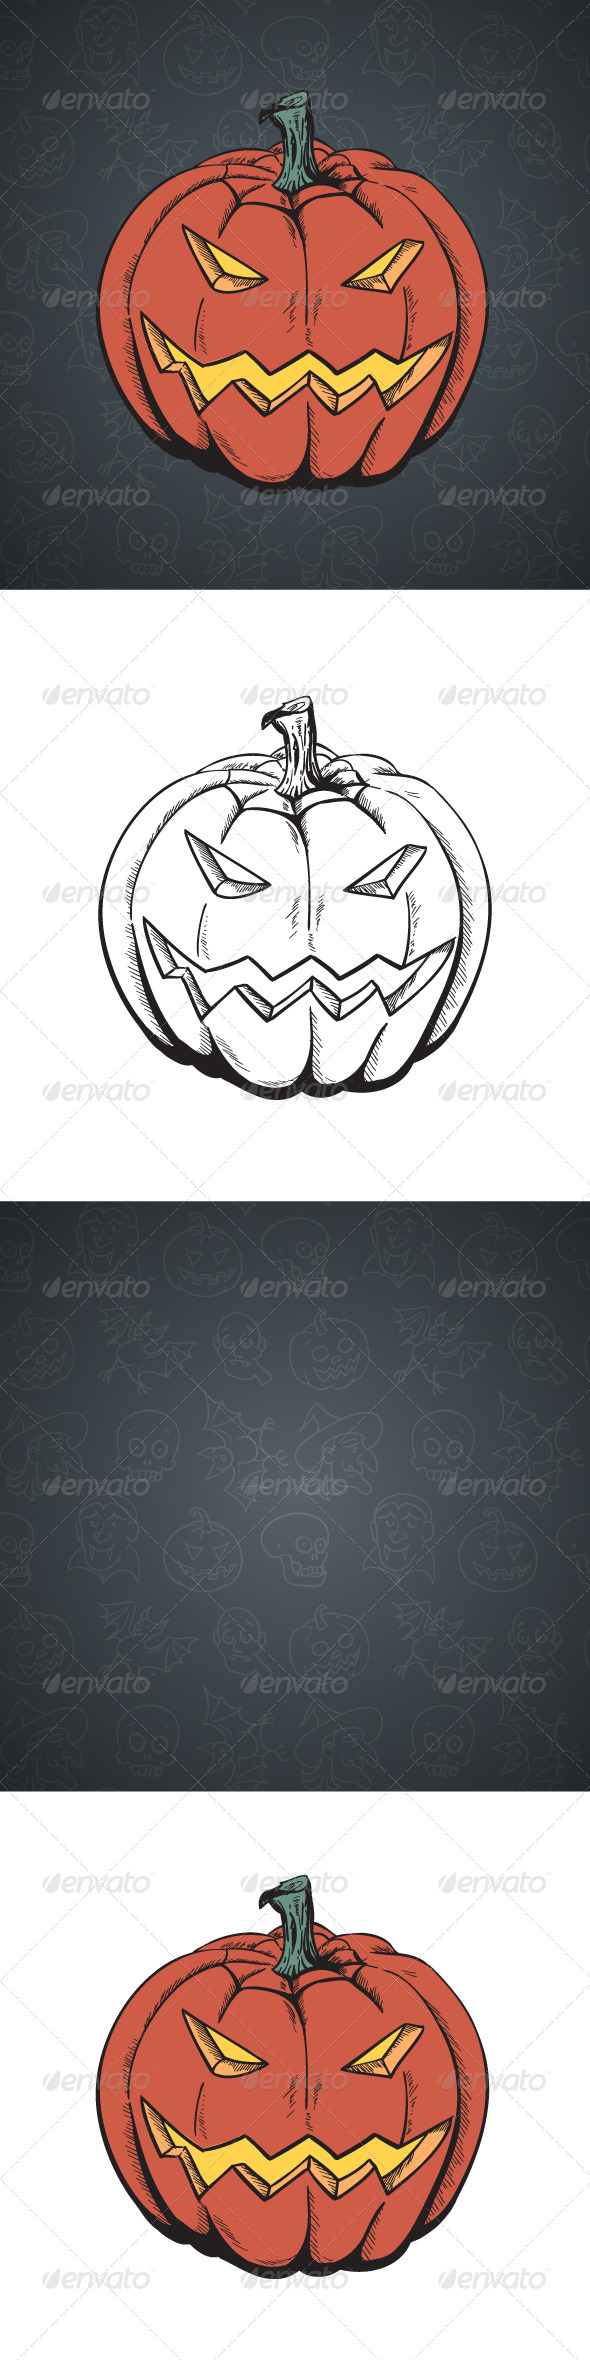 GraphicRiver Cartoon Halloween Pumpkin 5270543